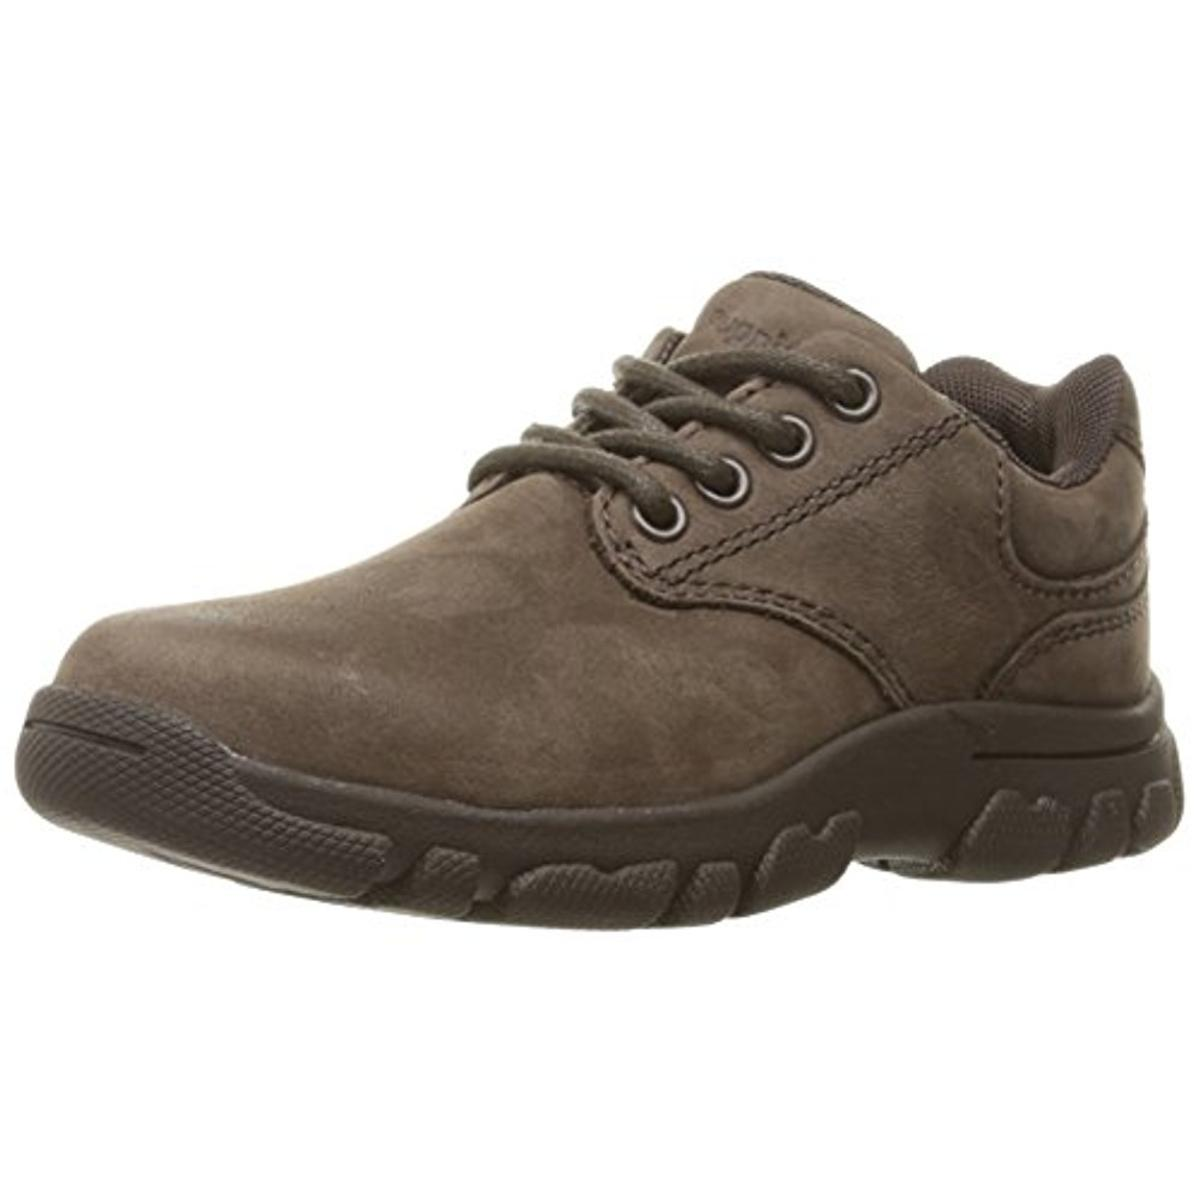 Hush Puppies Boys Chad Little Kid Leather Casual Shoes by Hush Puppies